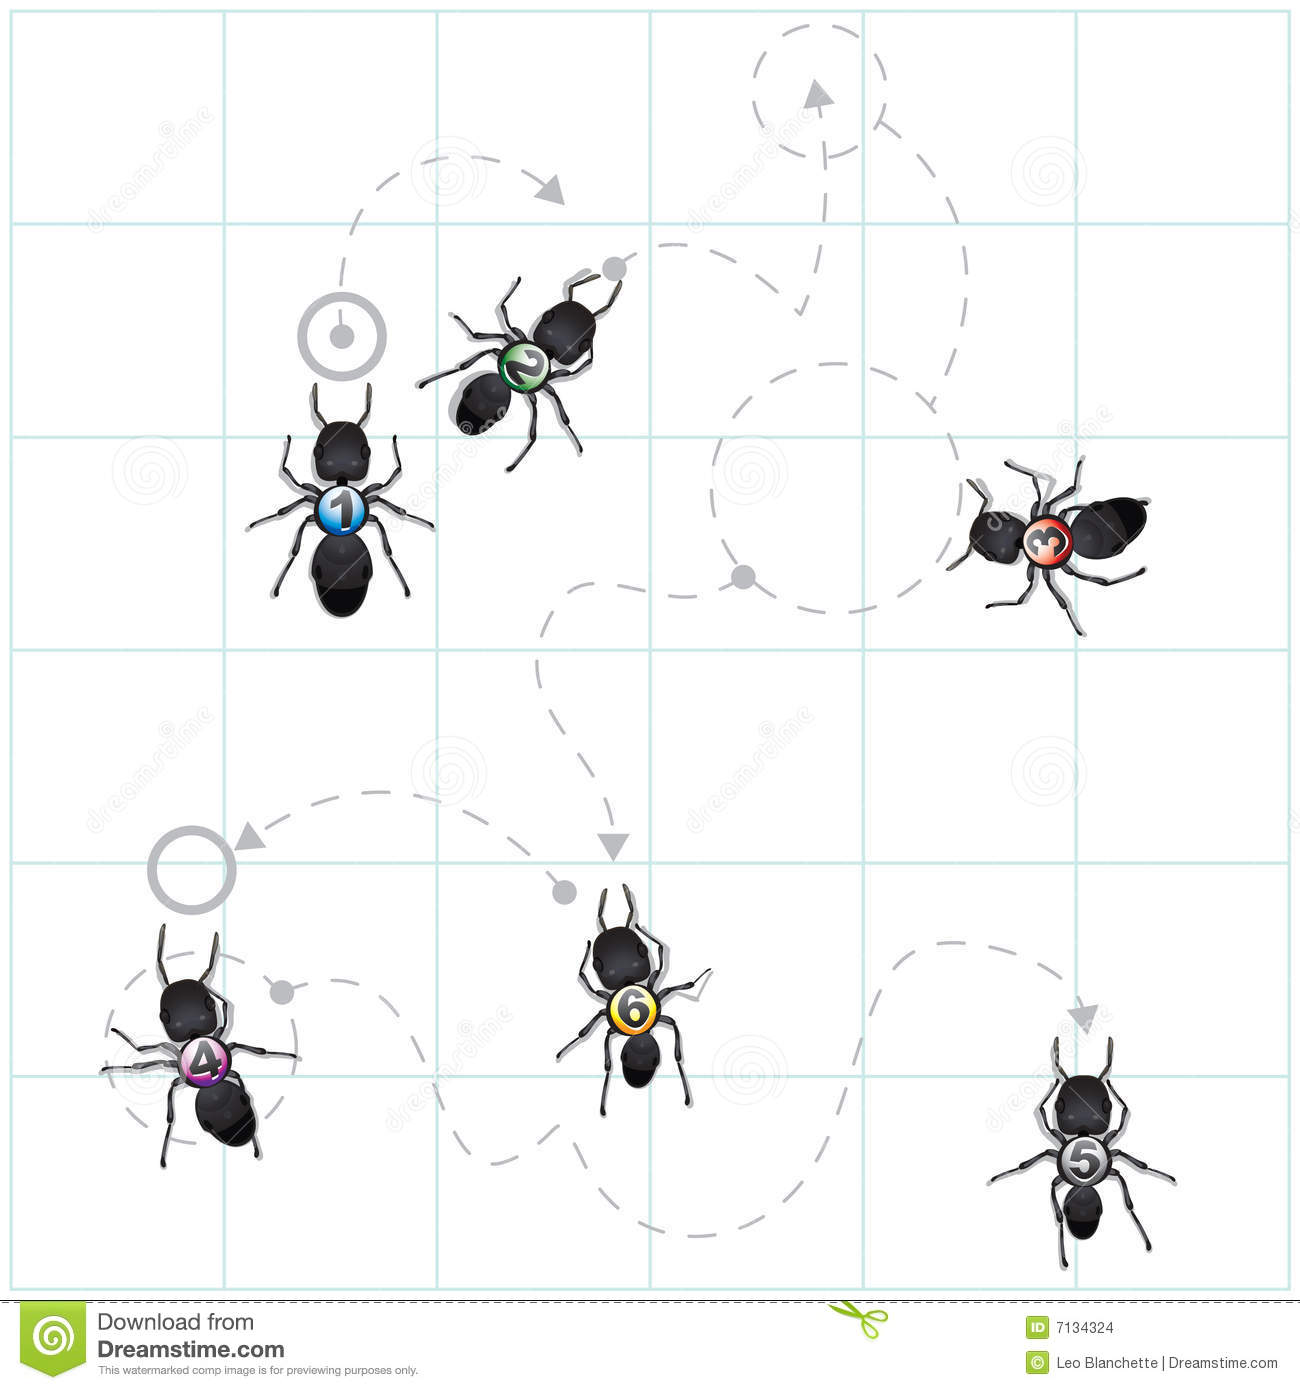 Diagram of ant patterns